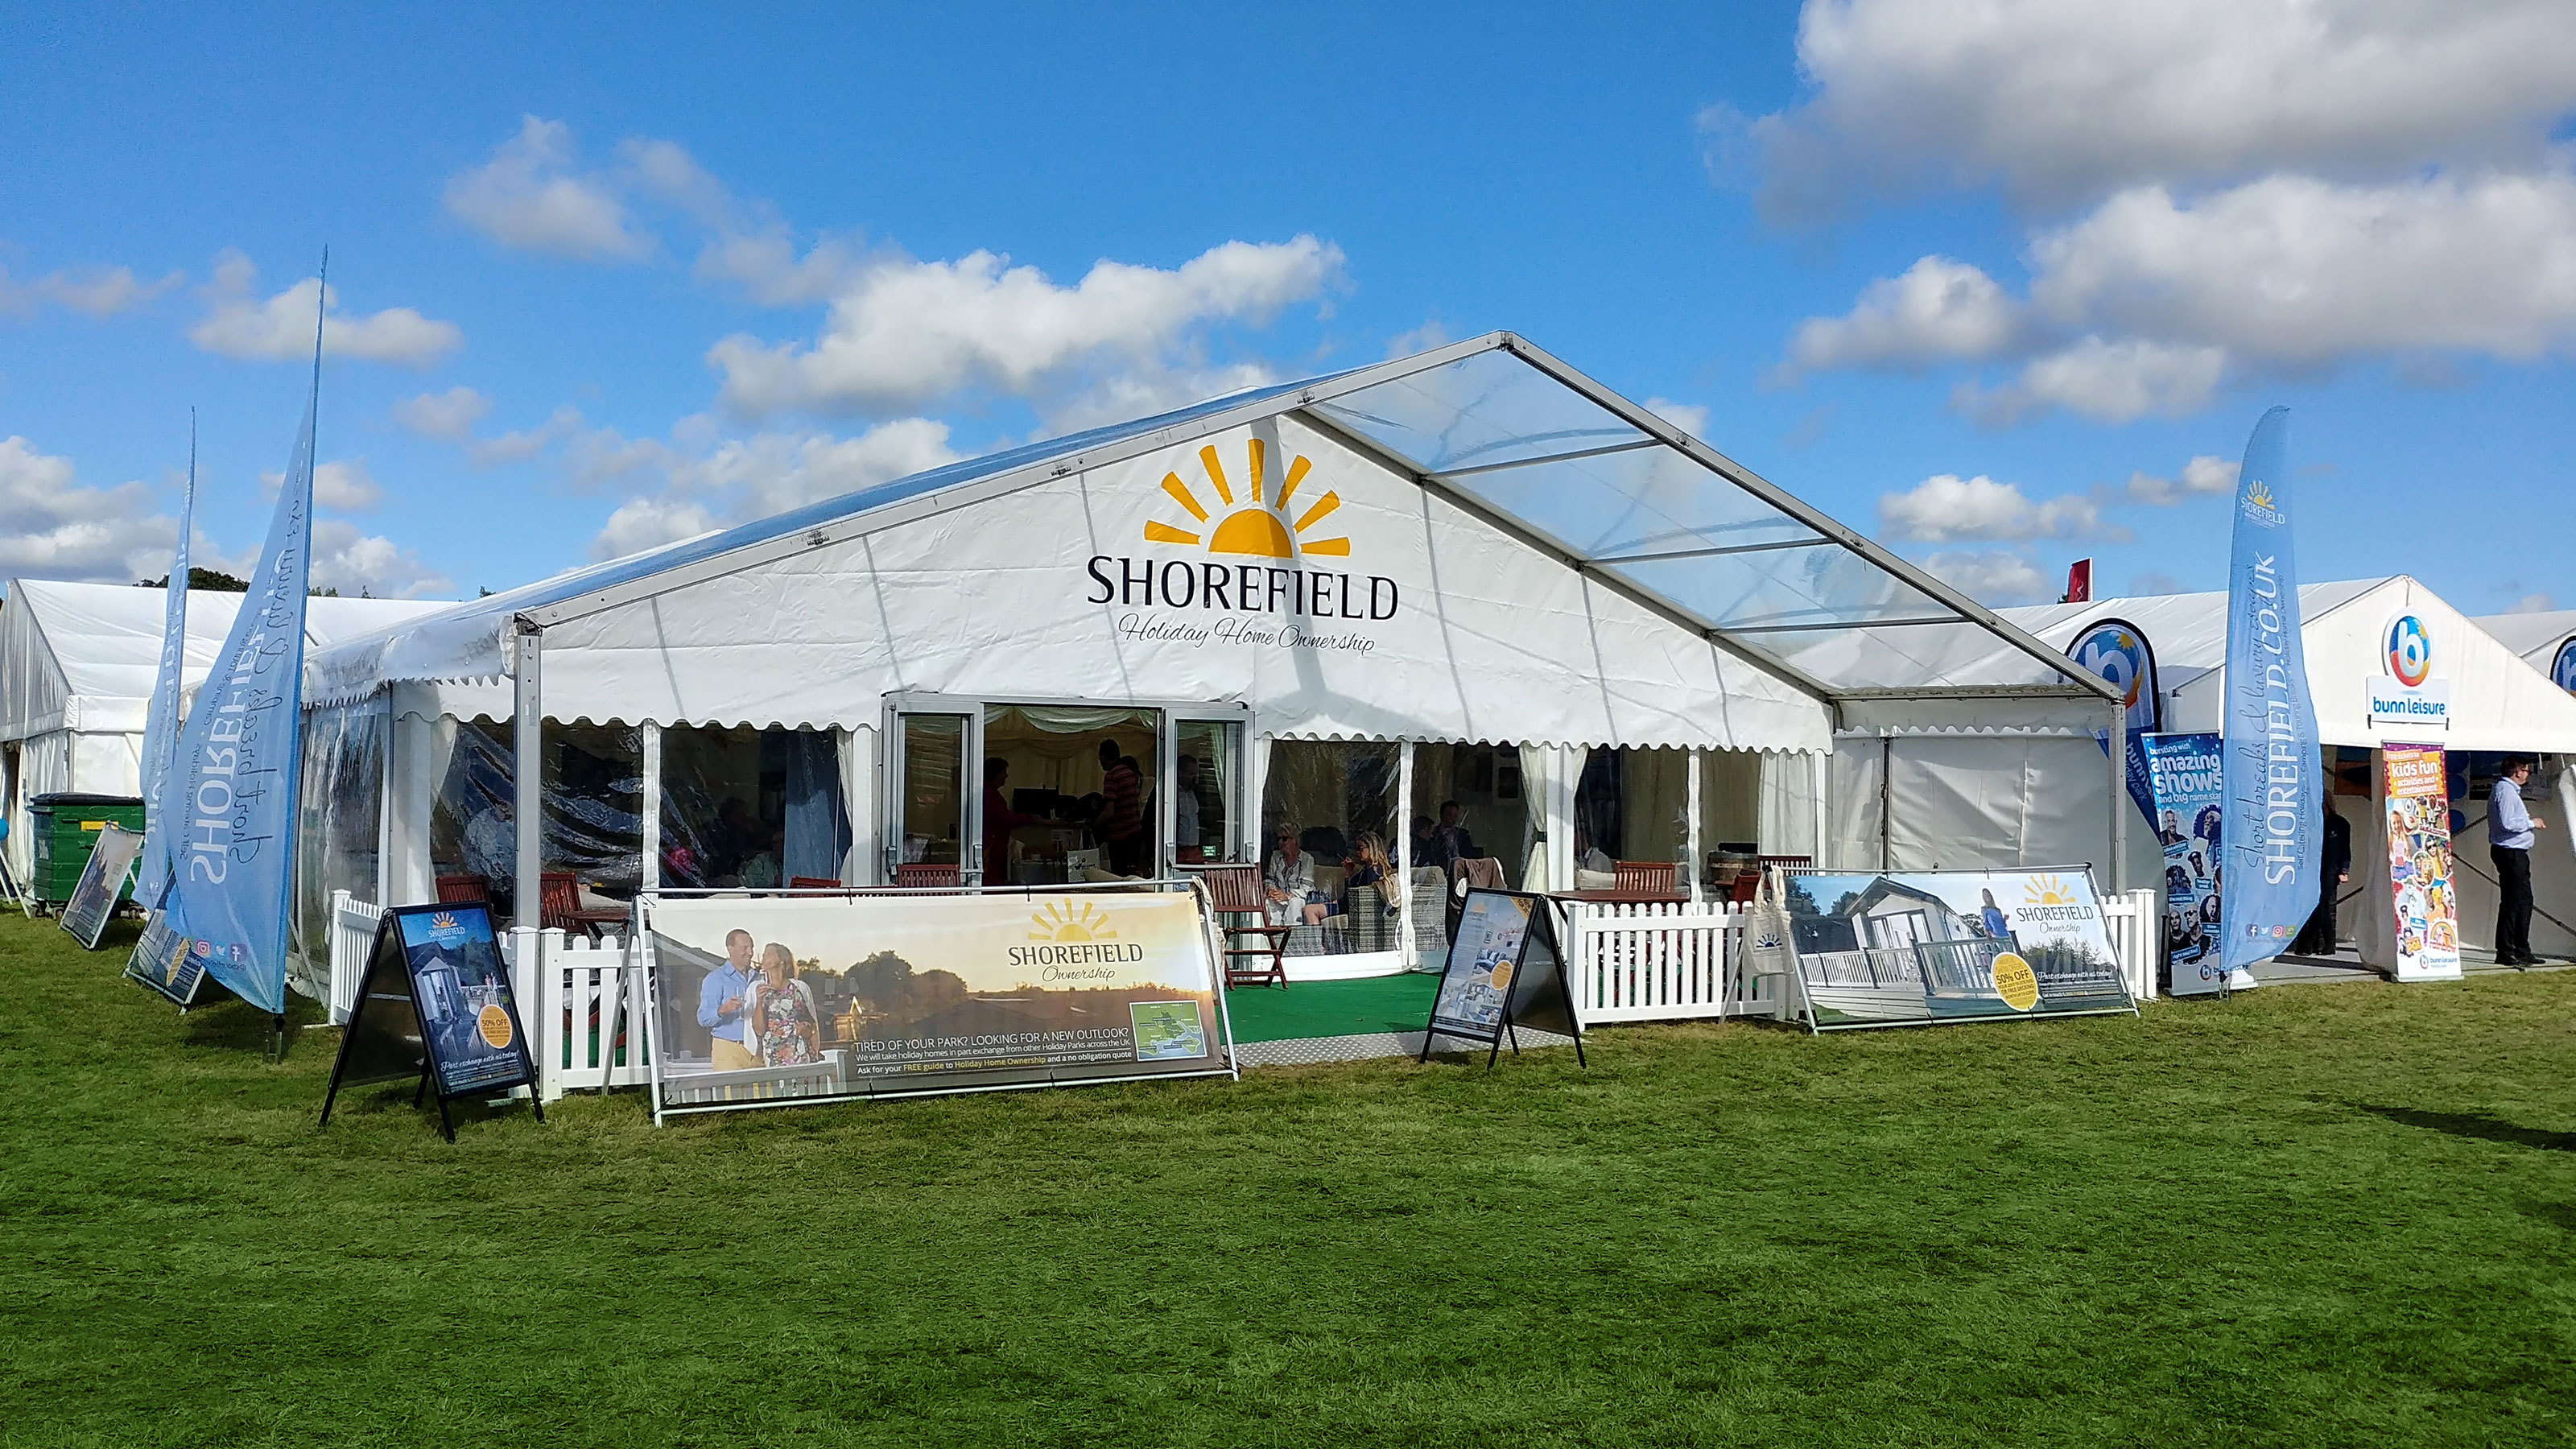 Shorefield-Holidays-marquee-at-the-Beaulieu-Show